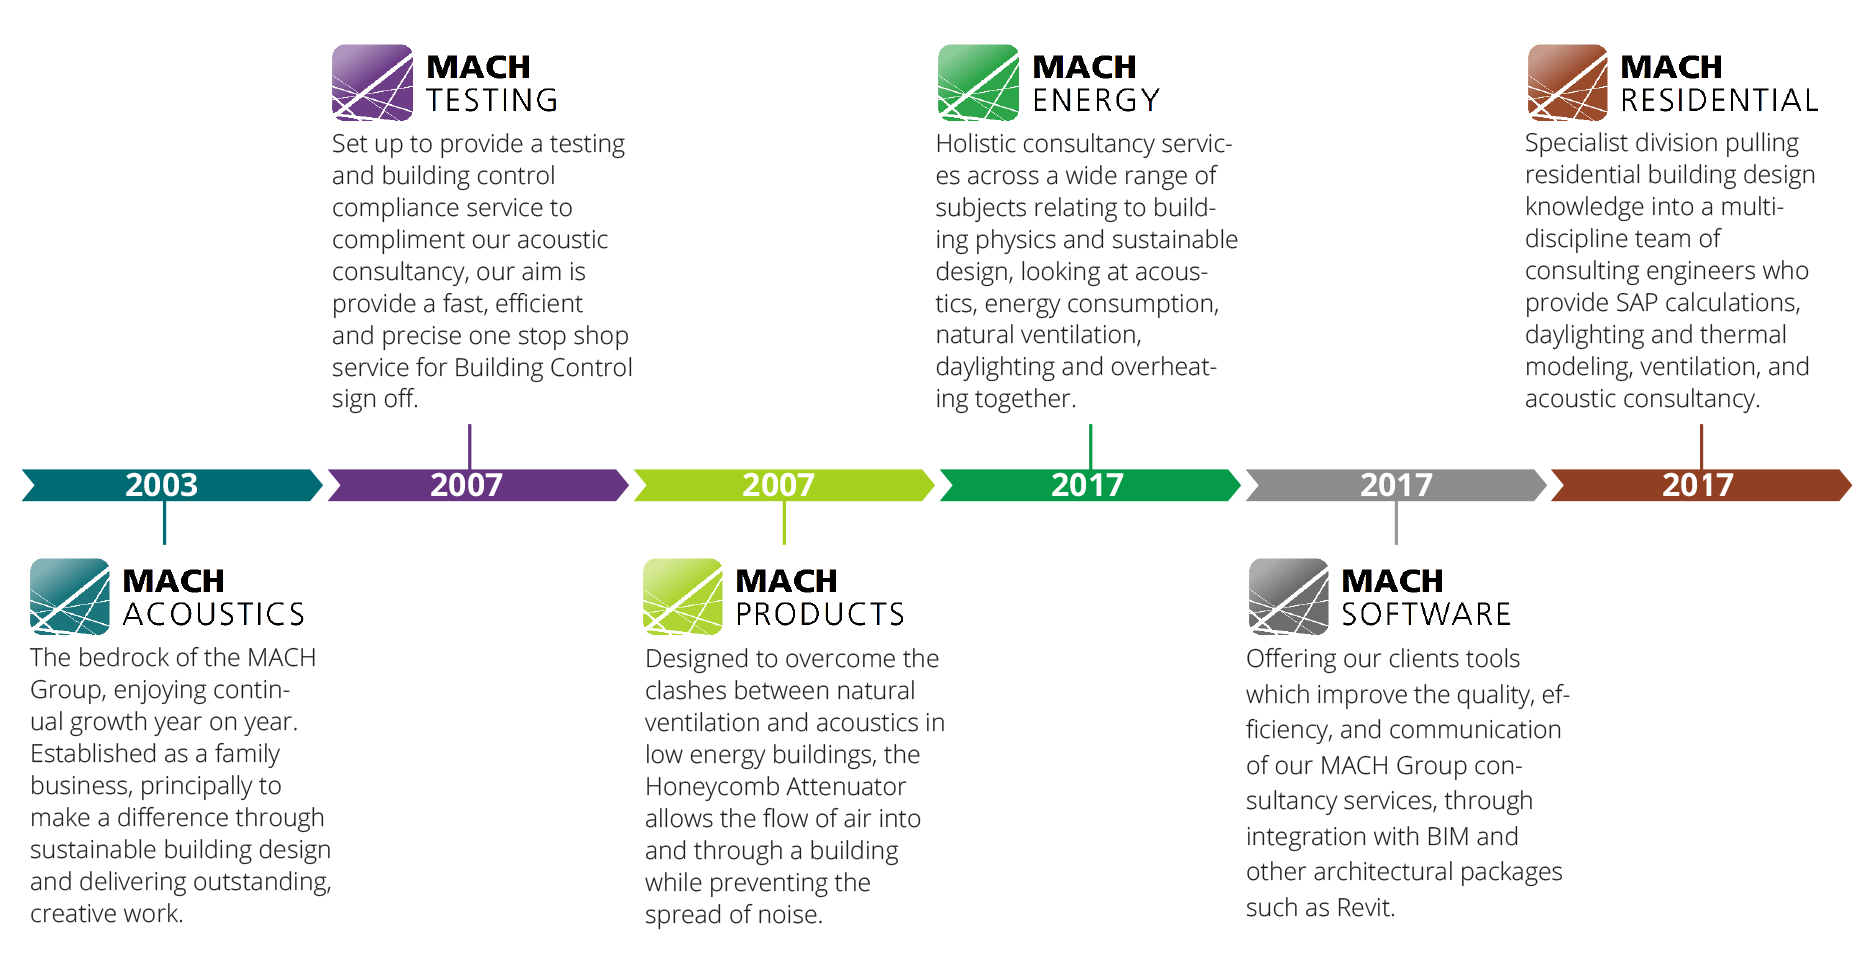 About MACH Group